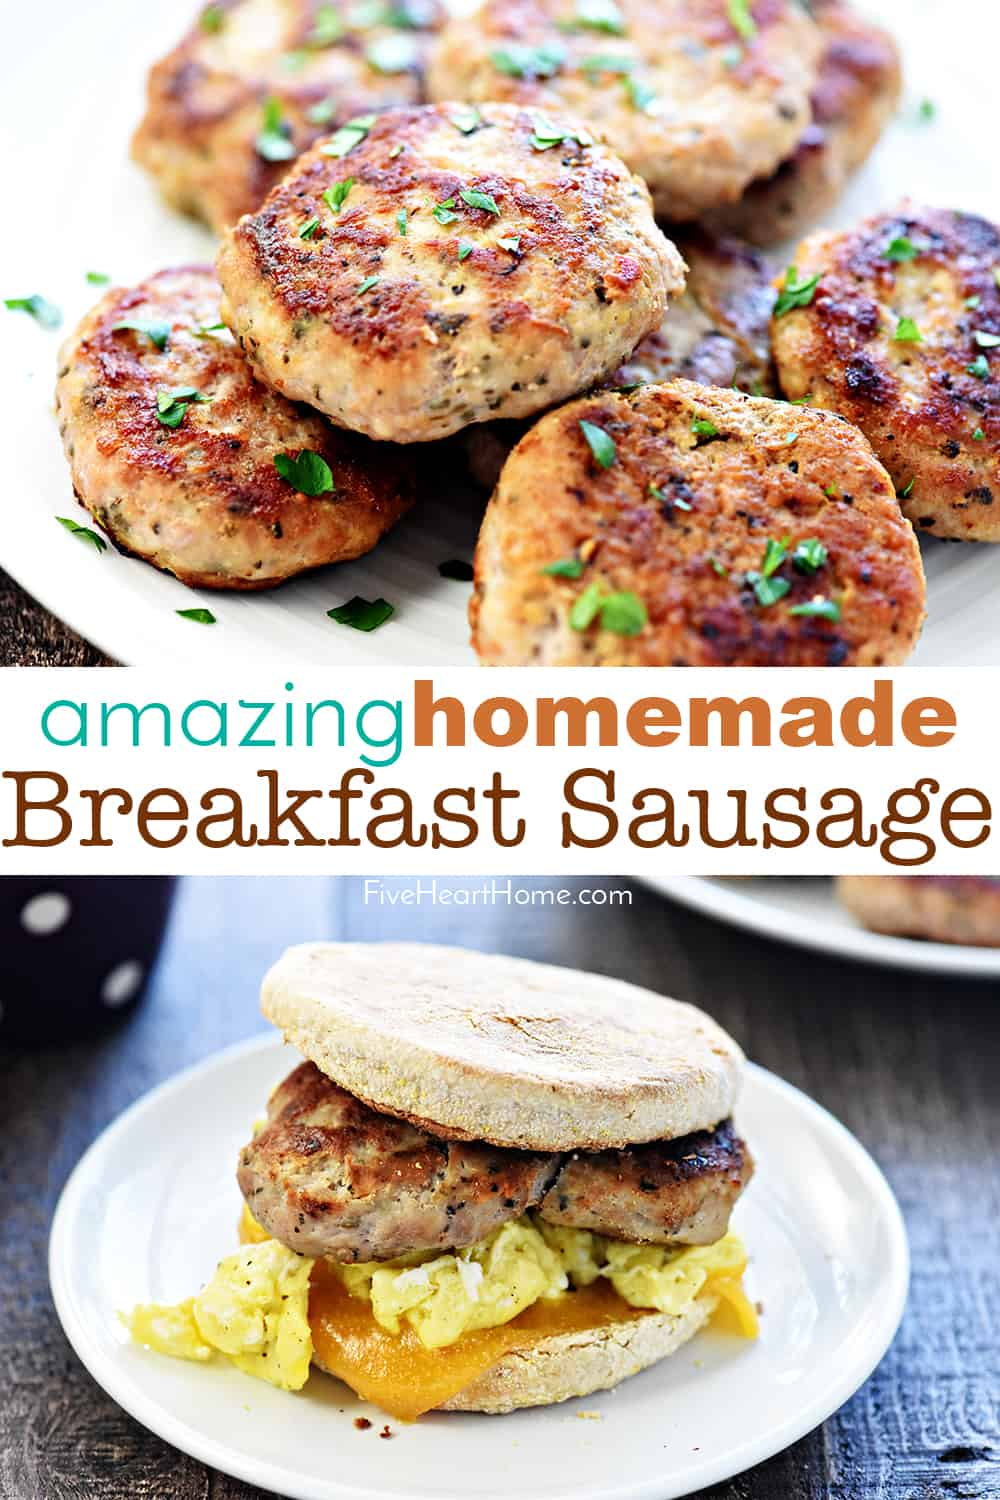 Amazing Homemade Breakfast Sausage ~ a flavorful blend of ground turkey, pork, and spices...delicious, easy to make, and you know exactly what's in it! | FiveHeartHome.com #breakfastsausage